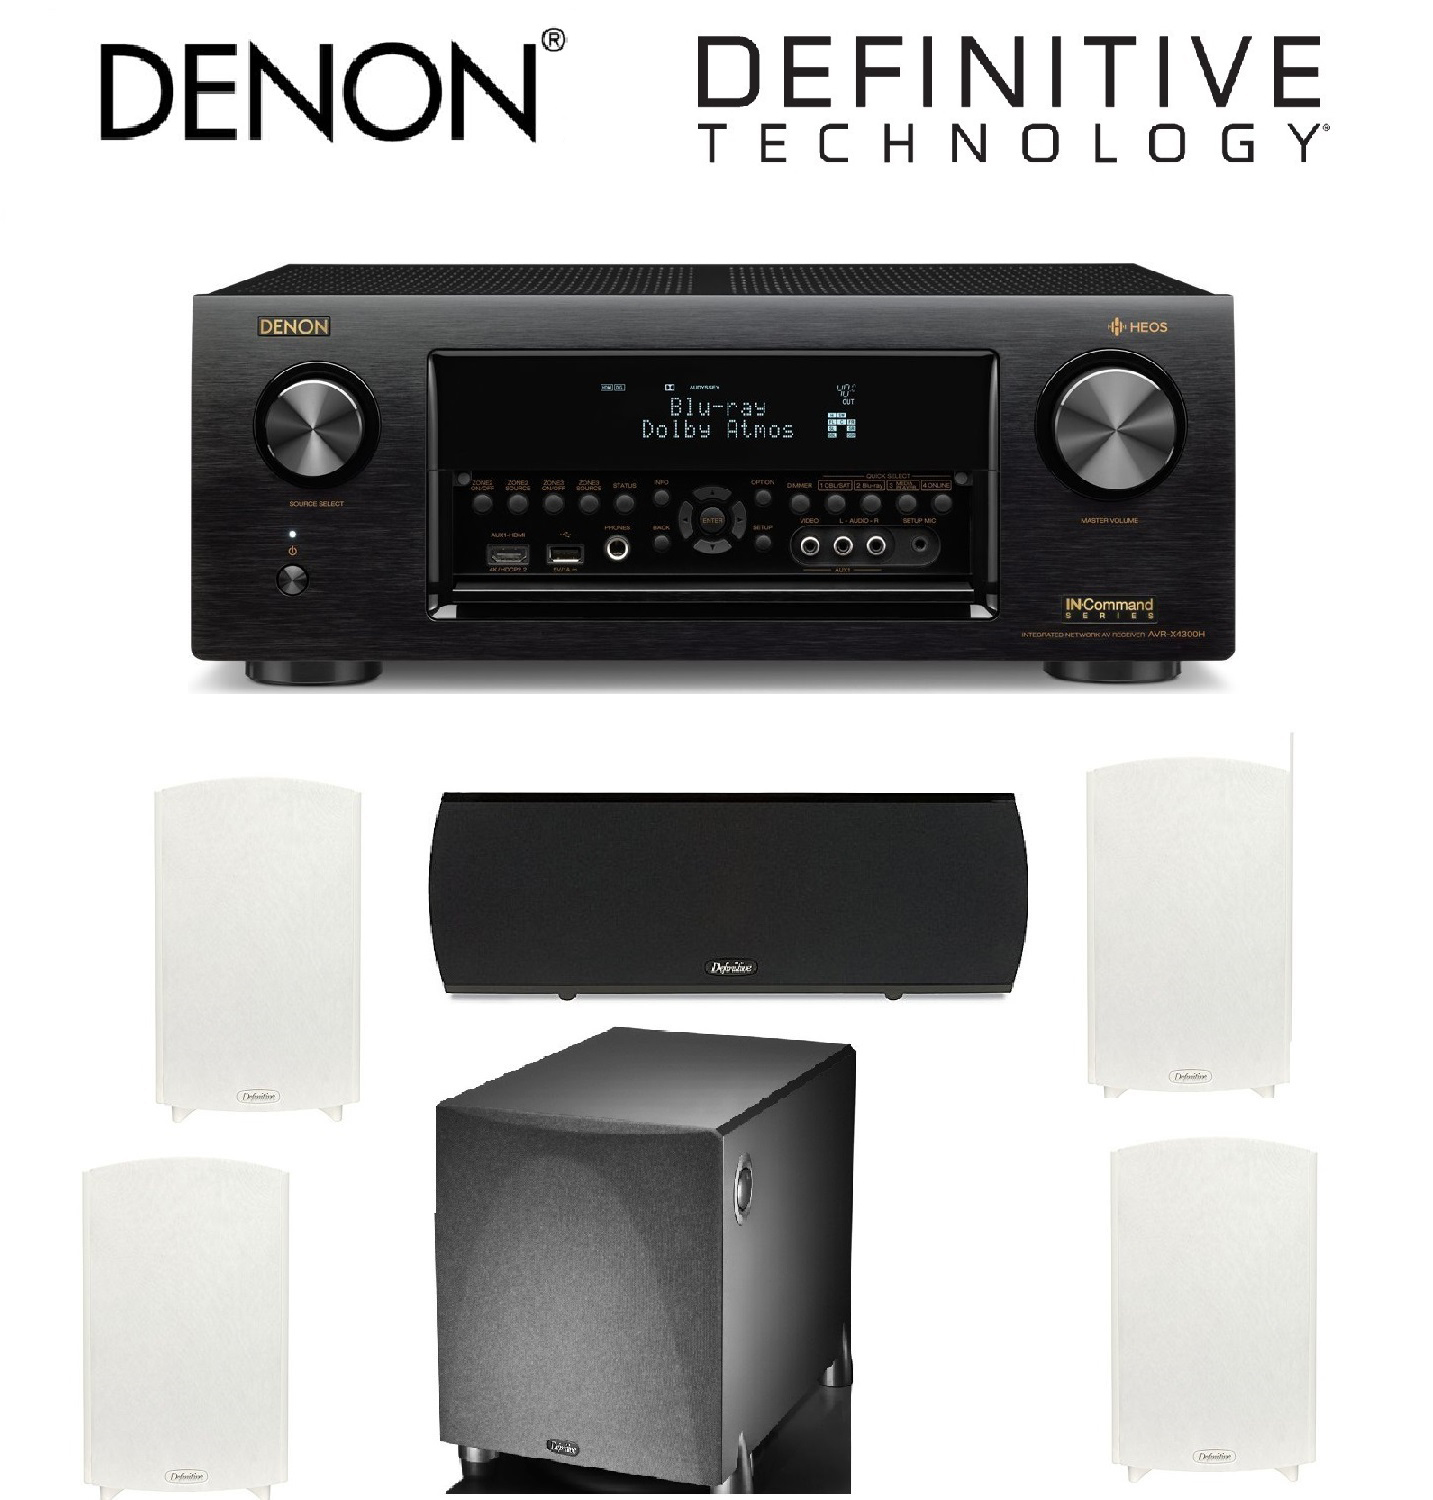 Denon Receiver Audio & Video Component Receiver,Black (AVRX4300H) + 2 Pairs of Definitive Technology ProMonitor 1000... by Denon